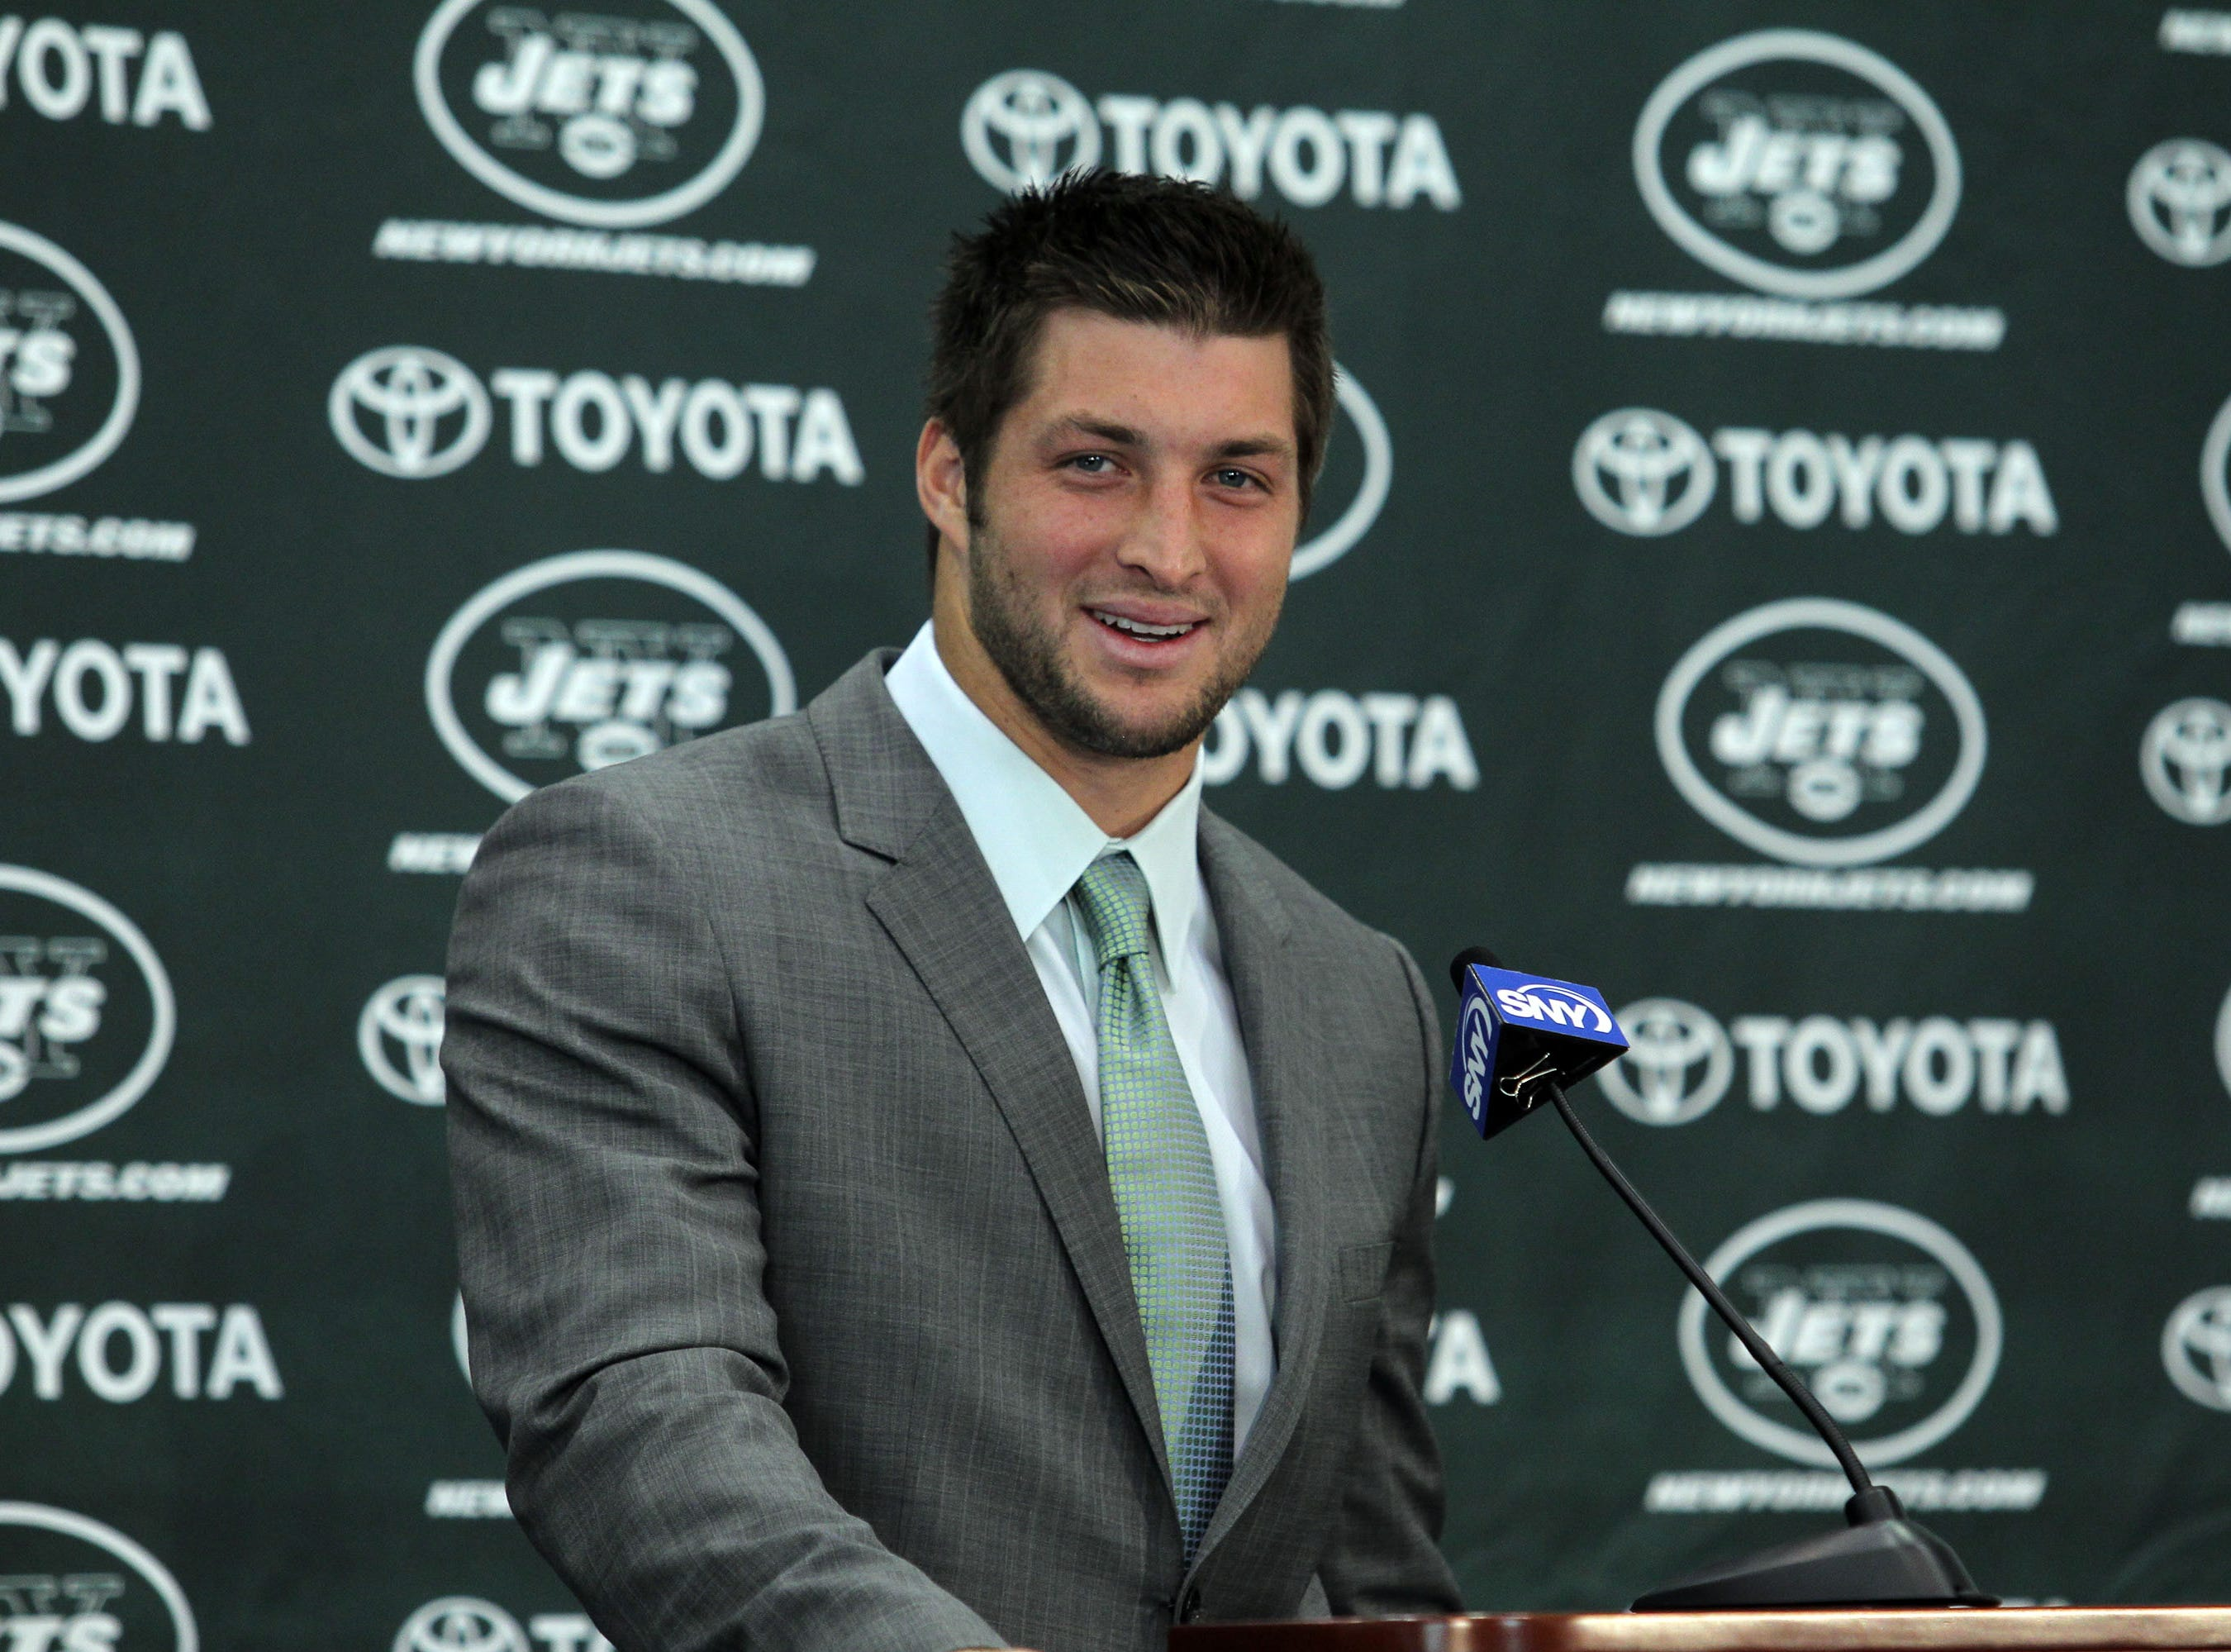 If we learned anything about Tim Tebow at his first Jets news conference, it was that he was 'excited' to join his new team.